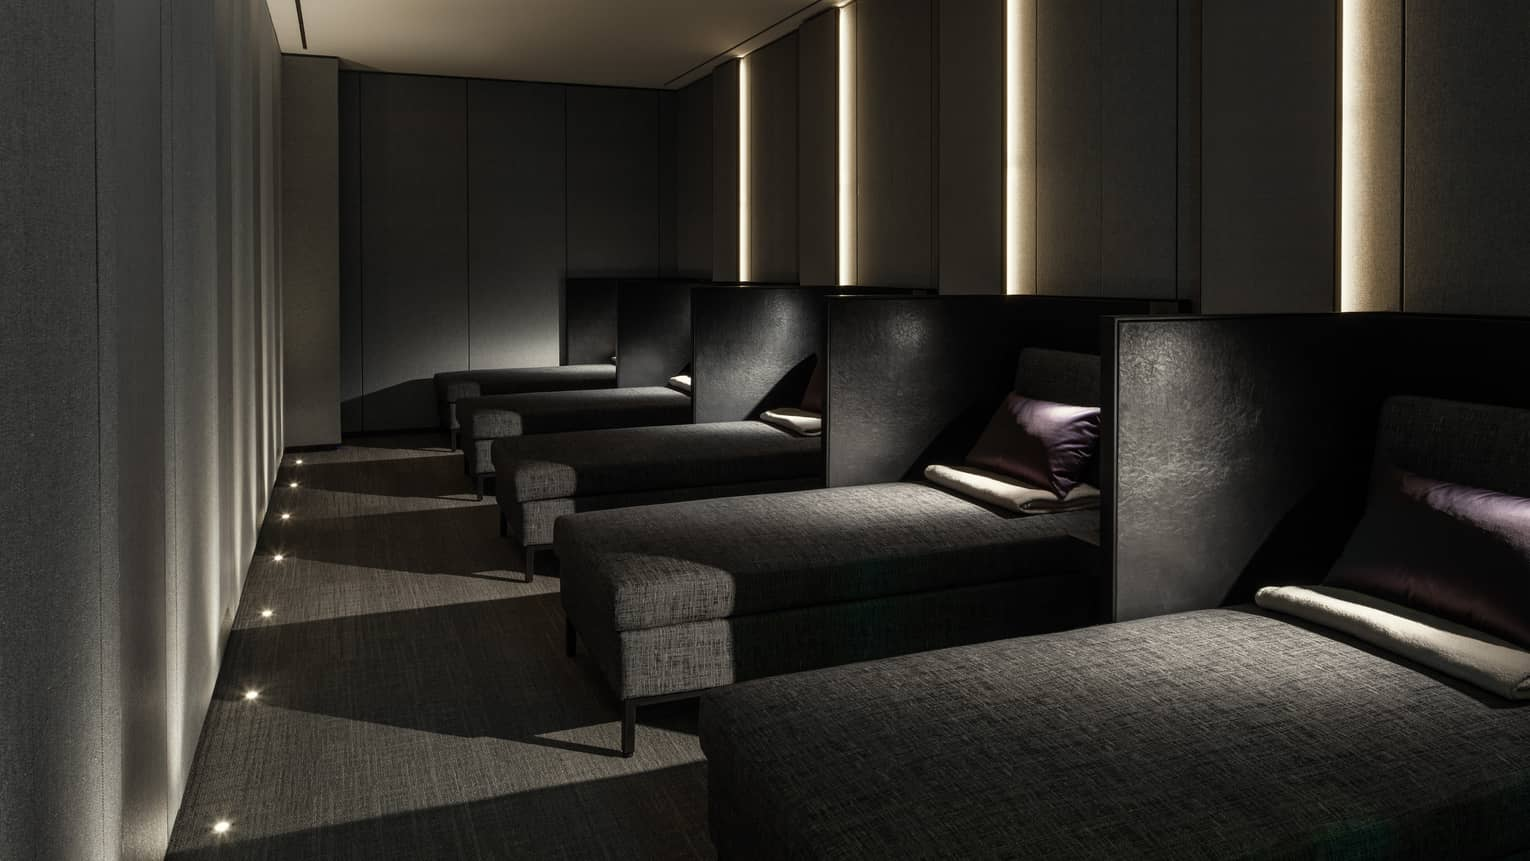 Row of lounge chaises with pillows, blankets in dark Napping Room